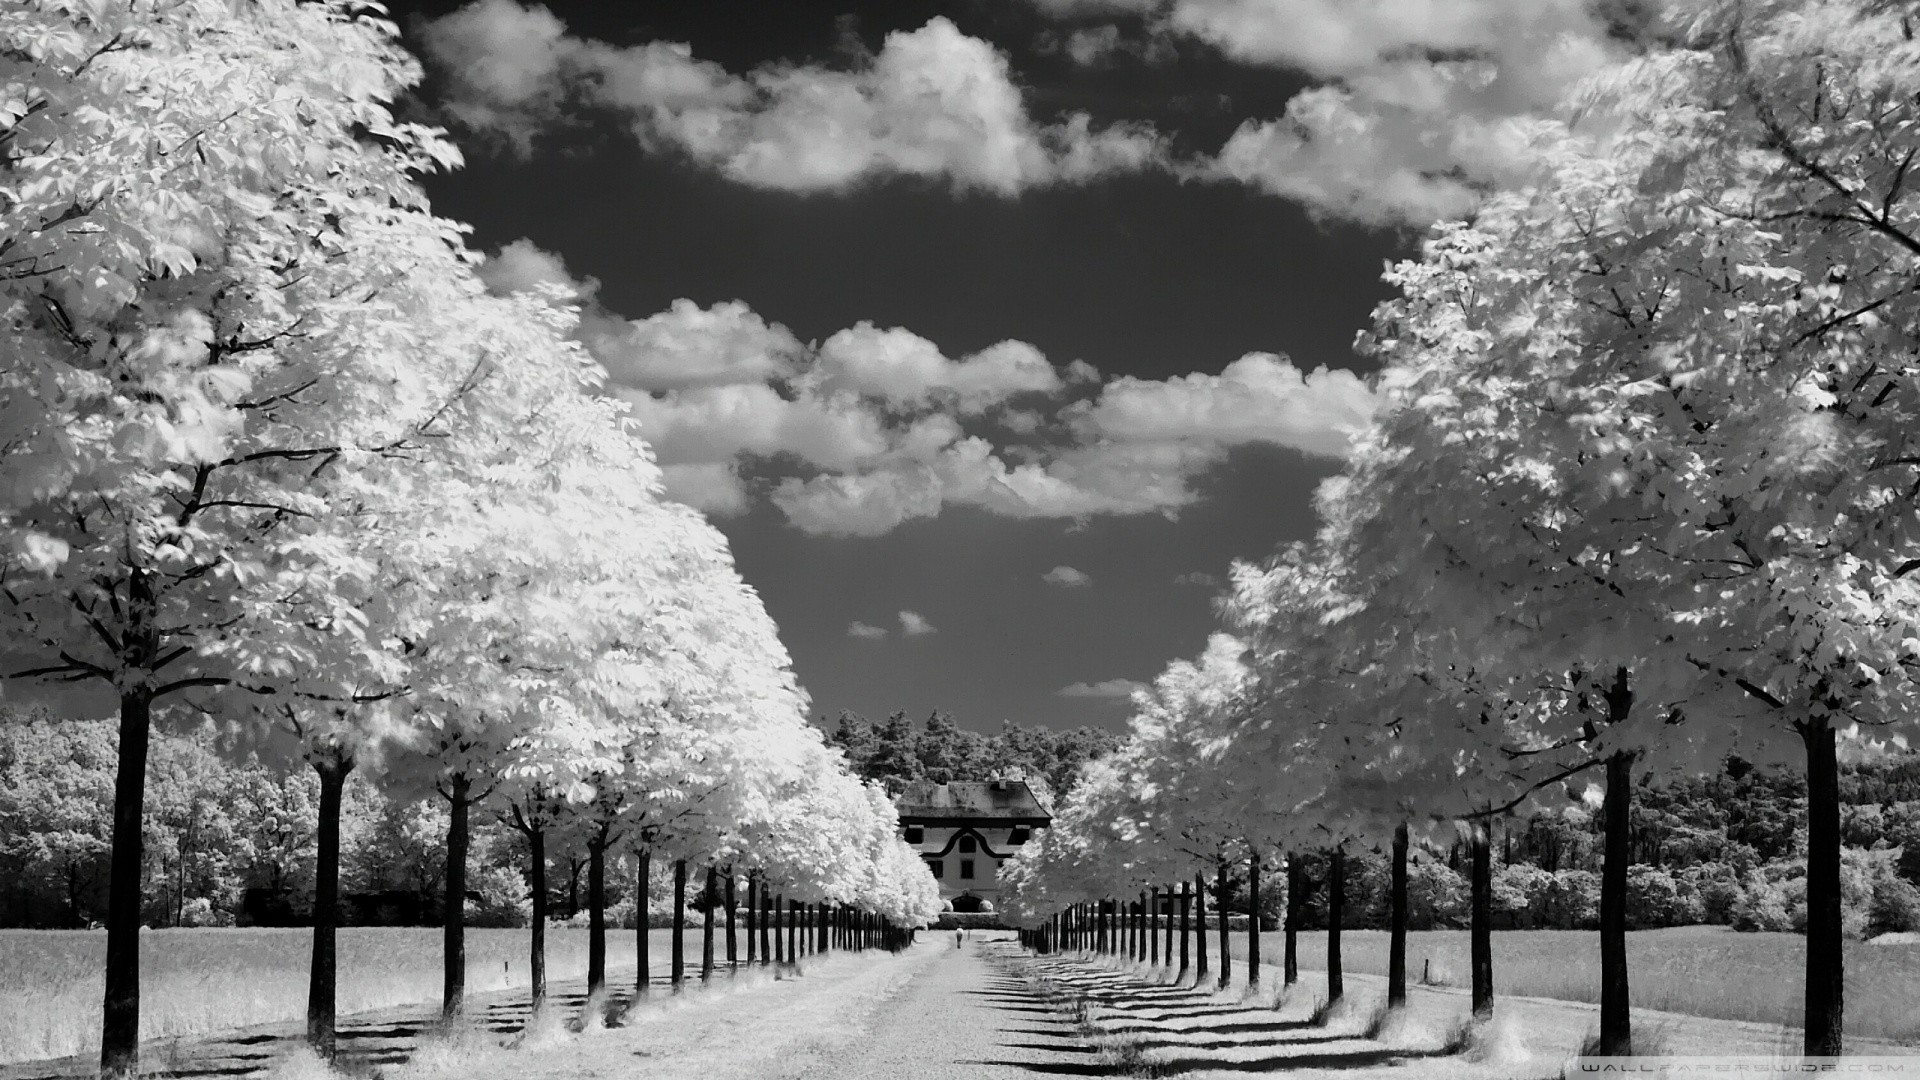 Best Wallpaper Photography Black And White: black and white tree